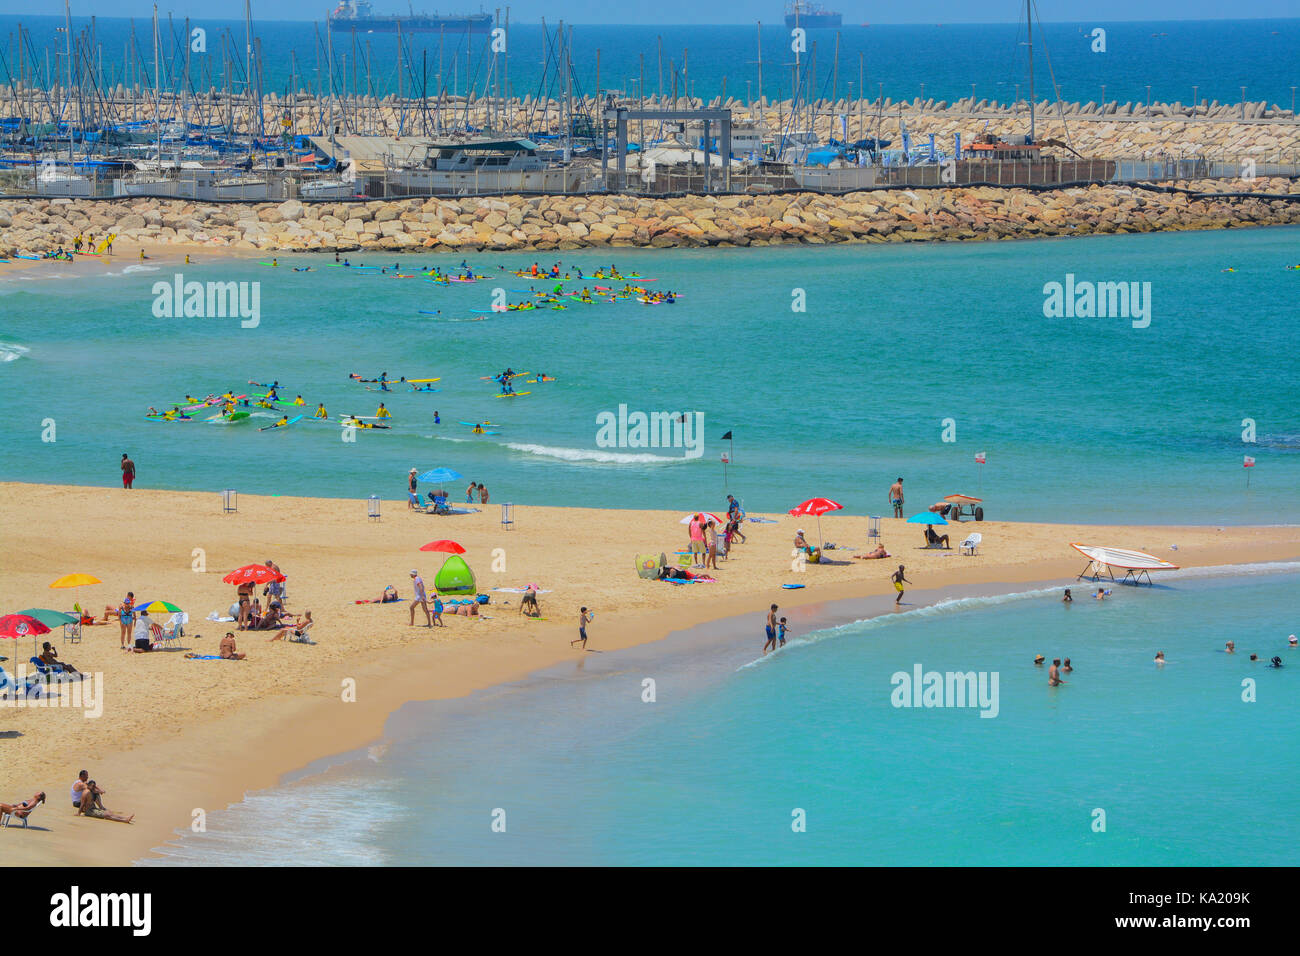 Ashkelon Israel Stock Photos & Ashkelon Israel Stock Images - Alamy